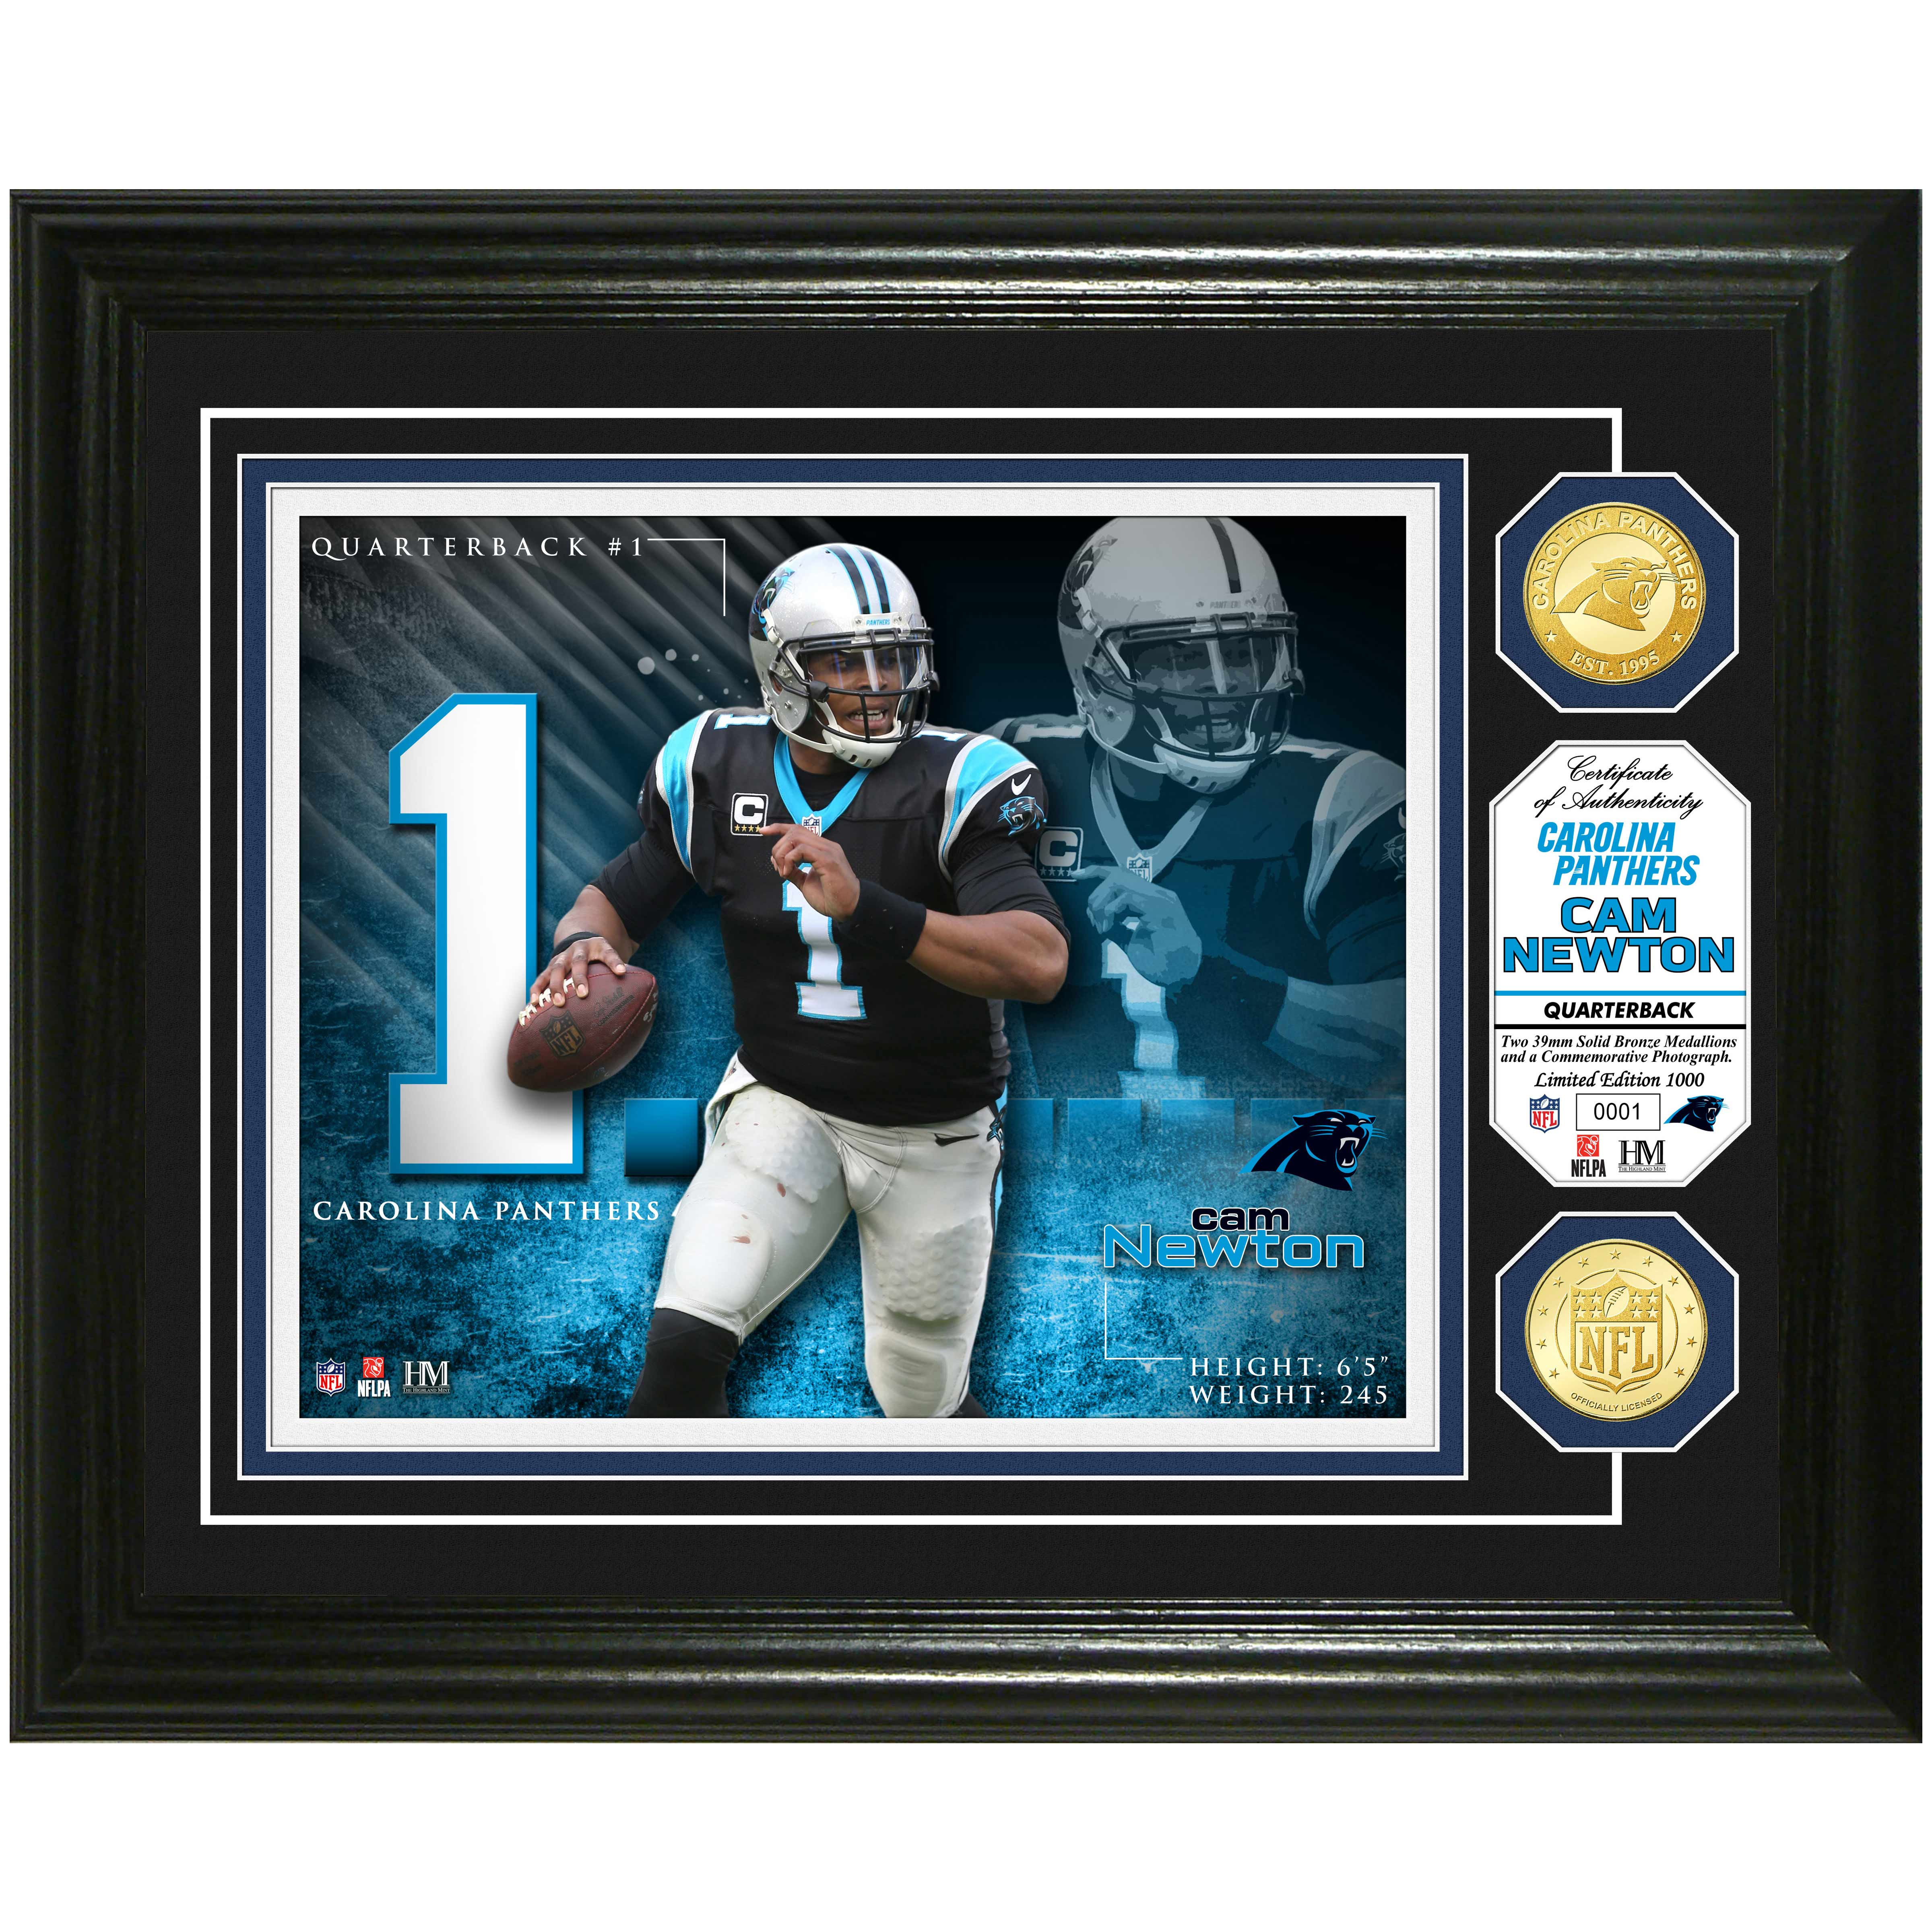 "Cam Newton Carolina Panthers Highland Mint 13"" x 16"" Player Photo Mint & Coin Set - No Size"